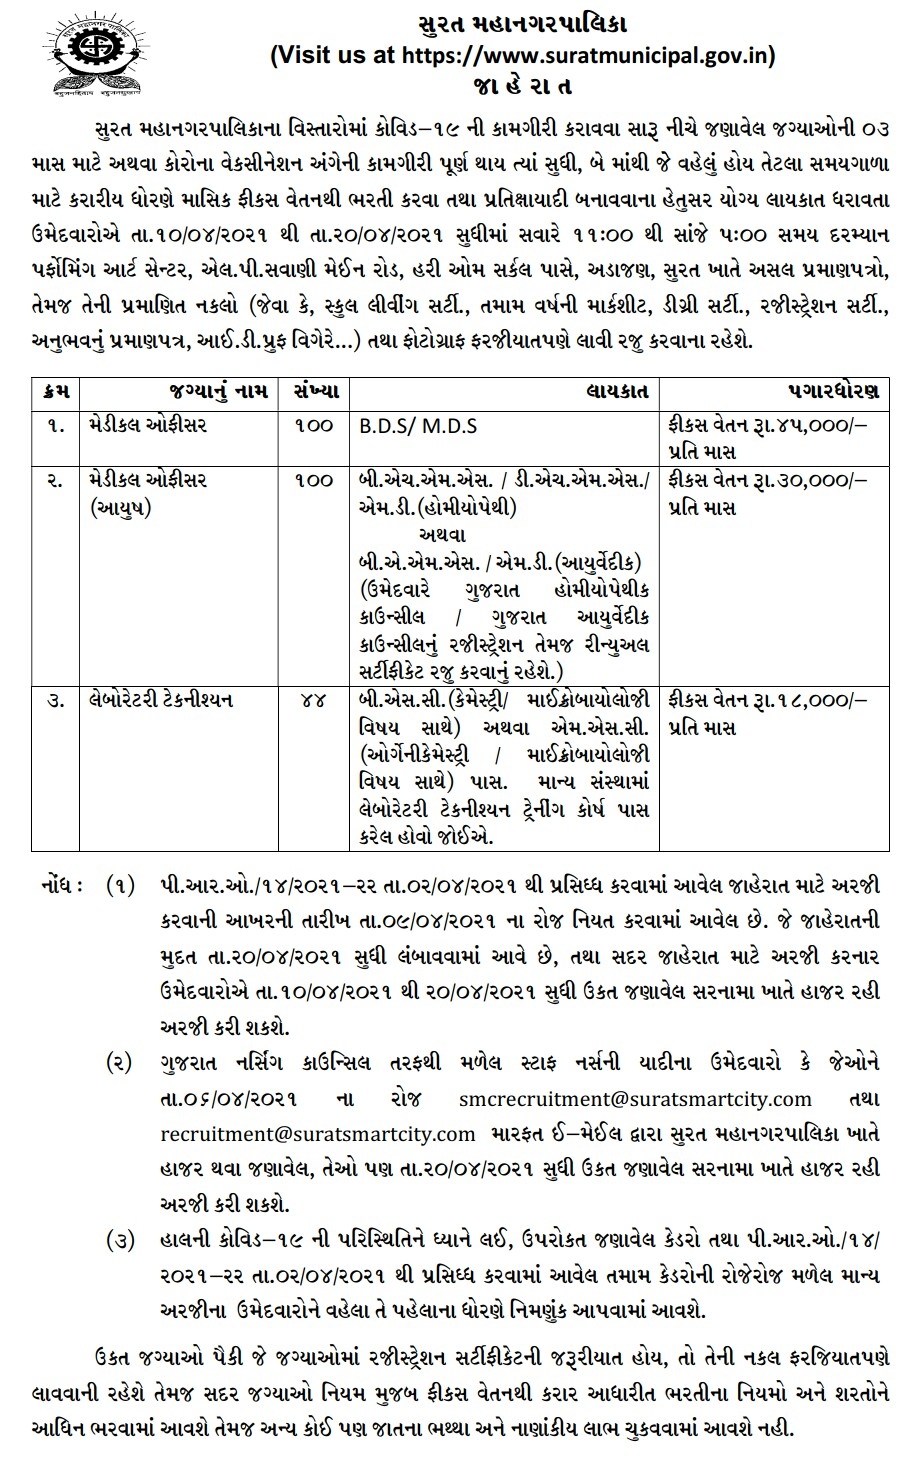 Surat Municipal Corporation (SMC) Recruitment 2021: Apply for 244 posts of Medical Officer and Lab. Technician.